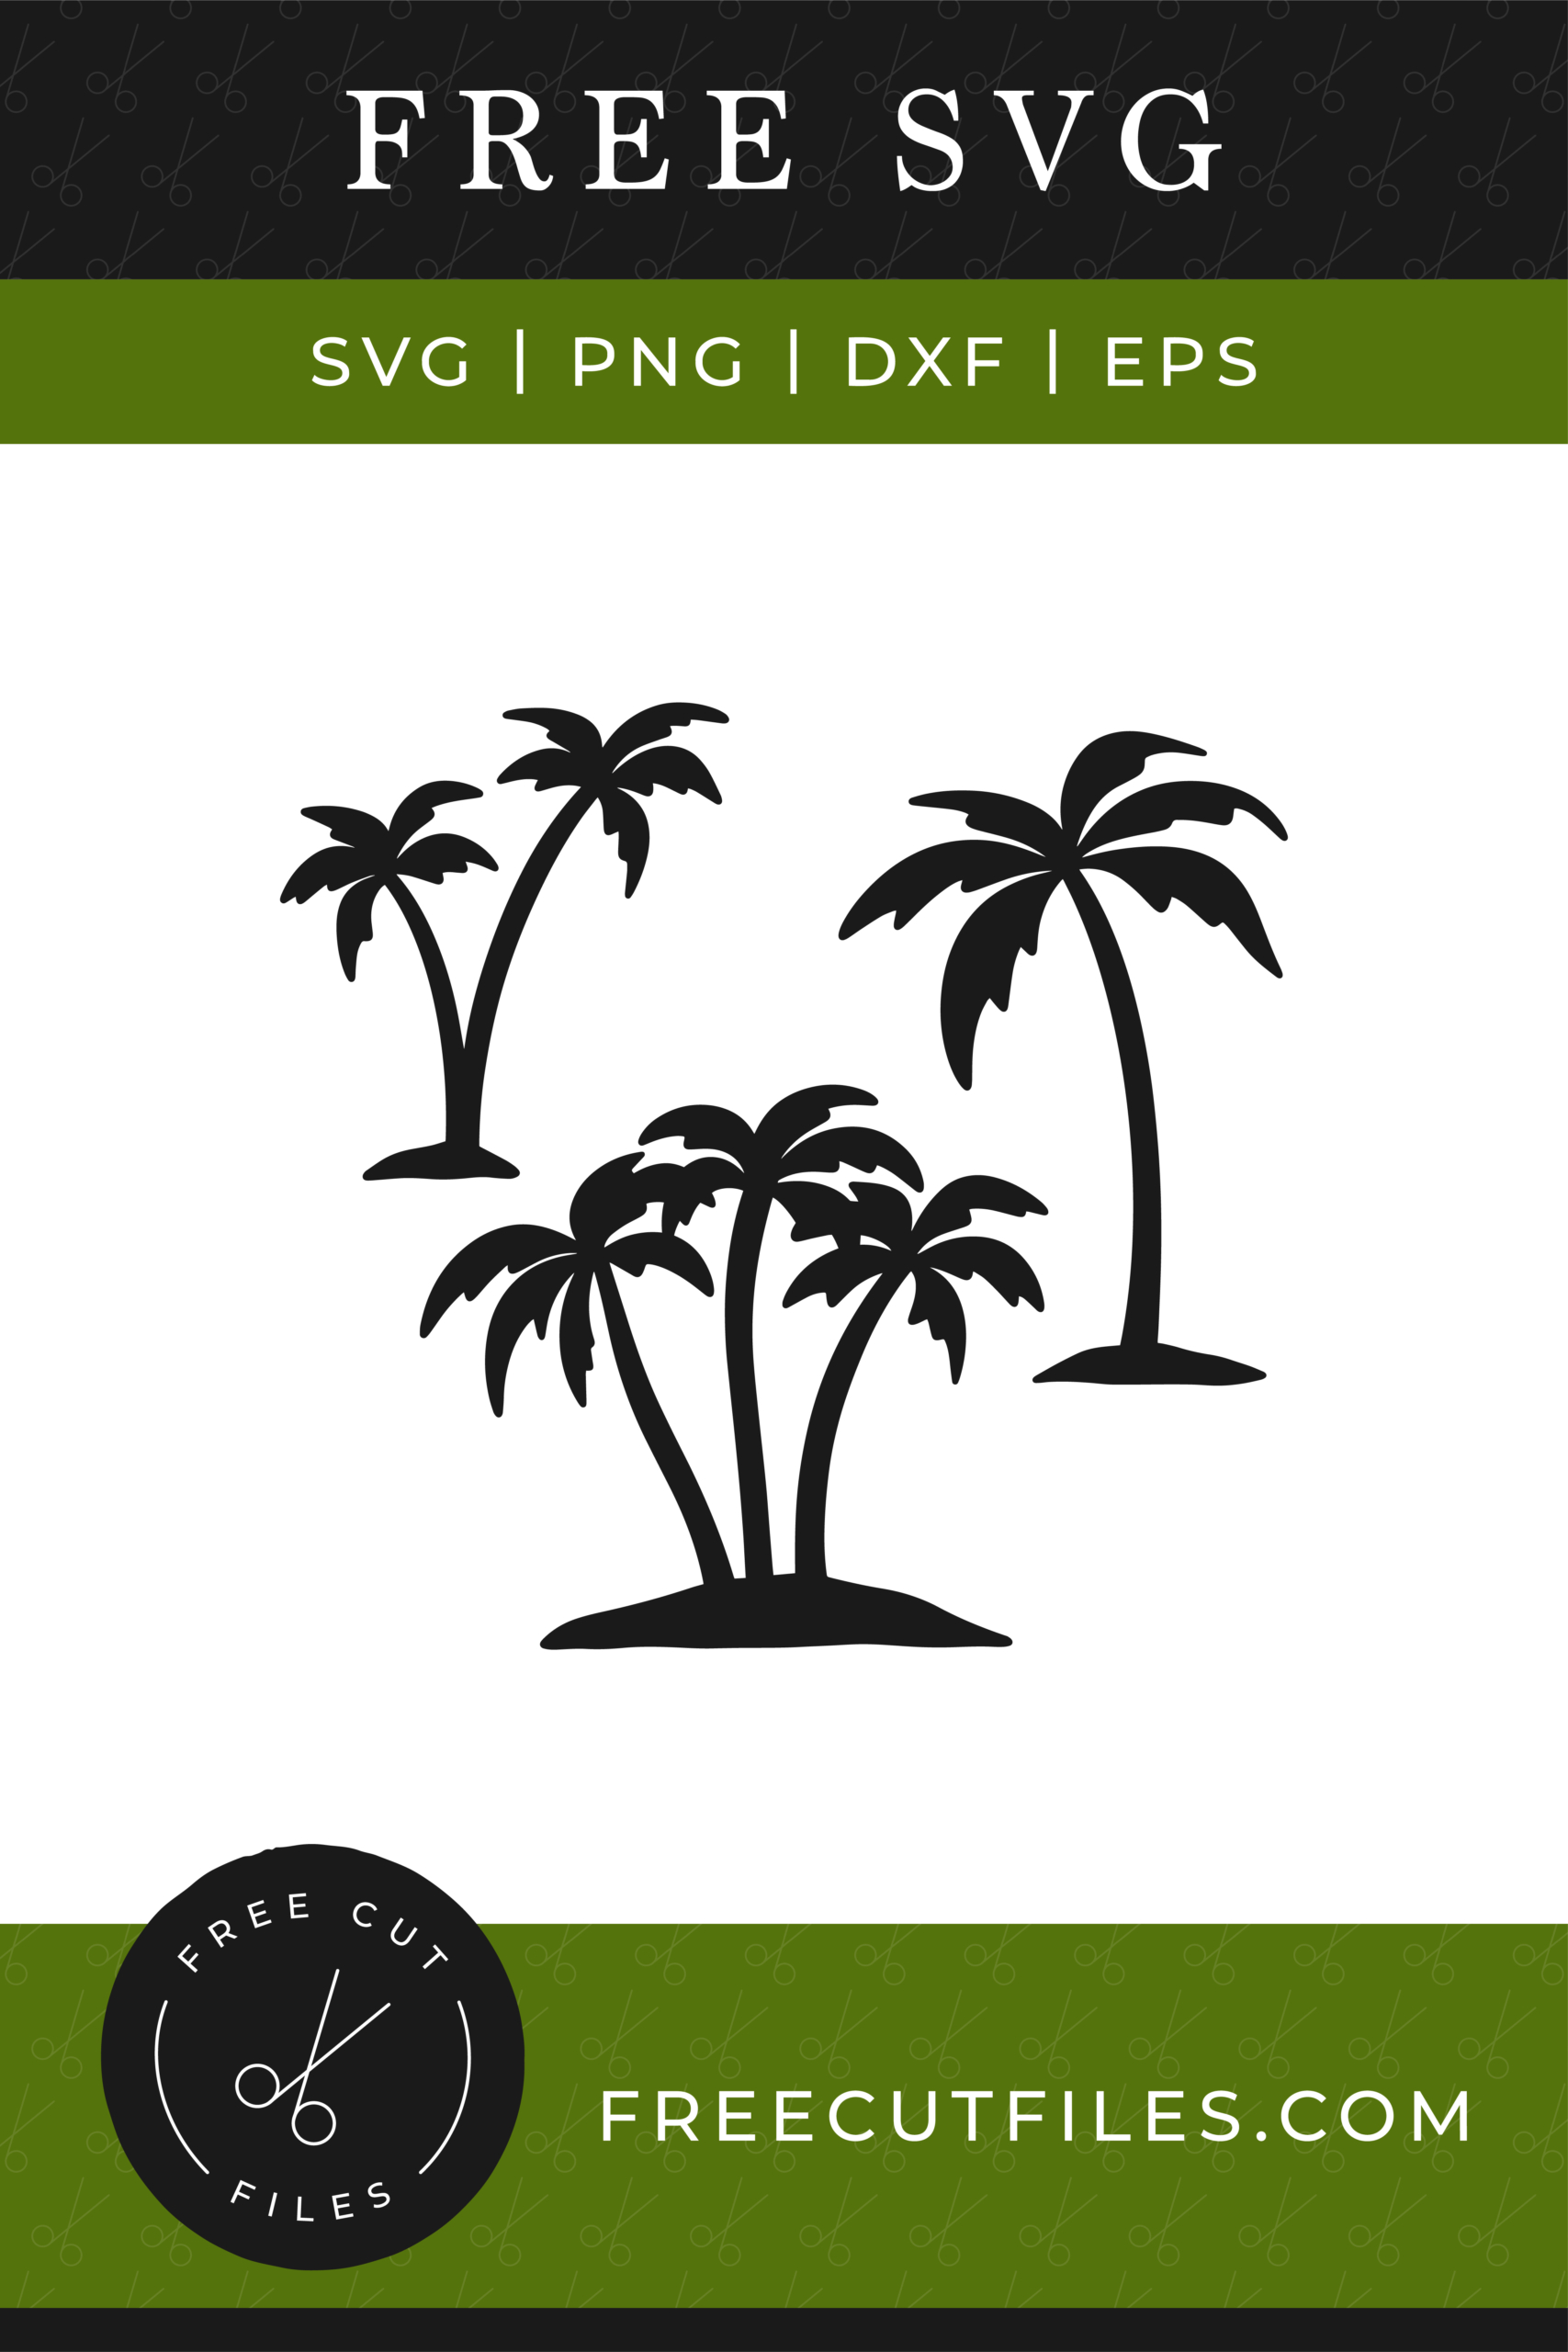 Free Silhouette of palm trees SVG